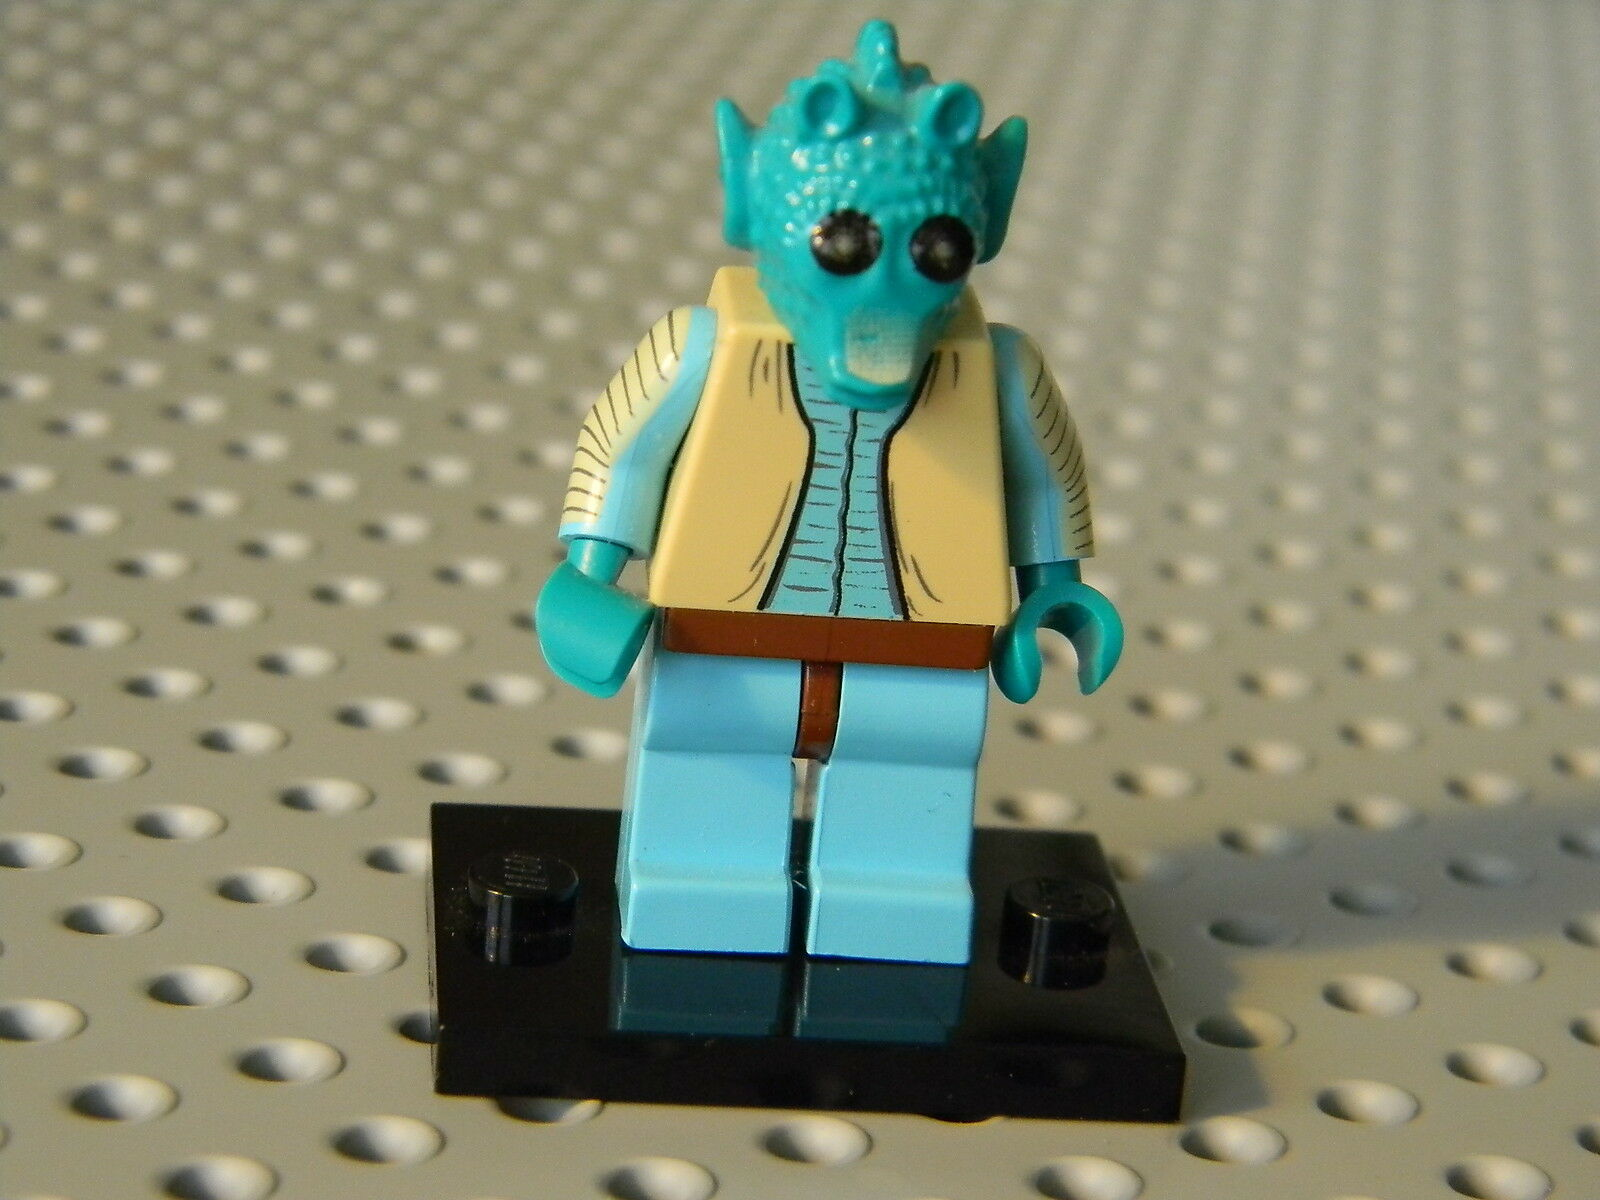 Lego Star Wars Greedo Minifig from 4501 Eisley Cantina